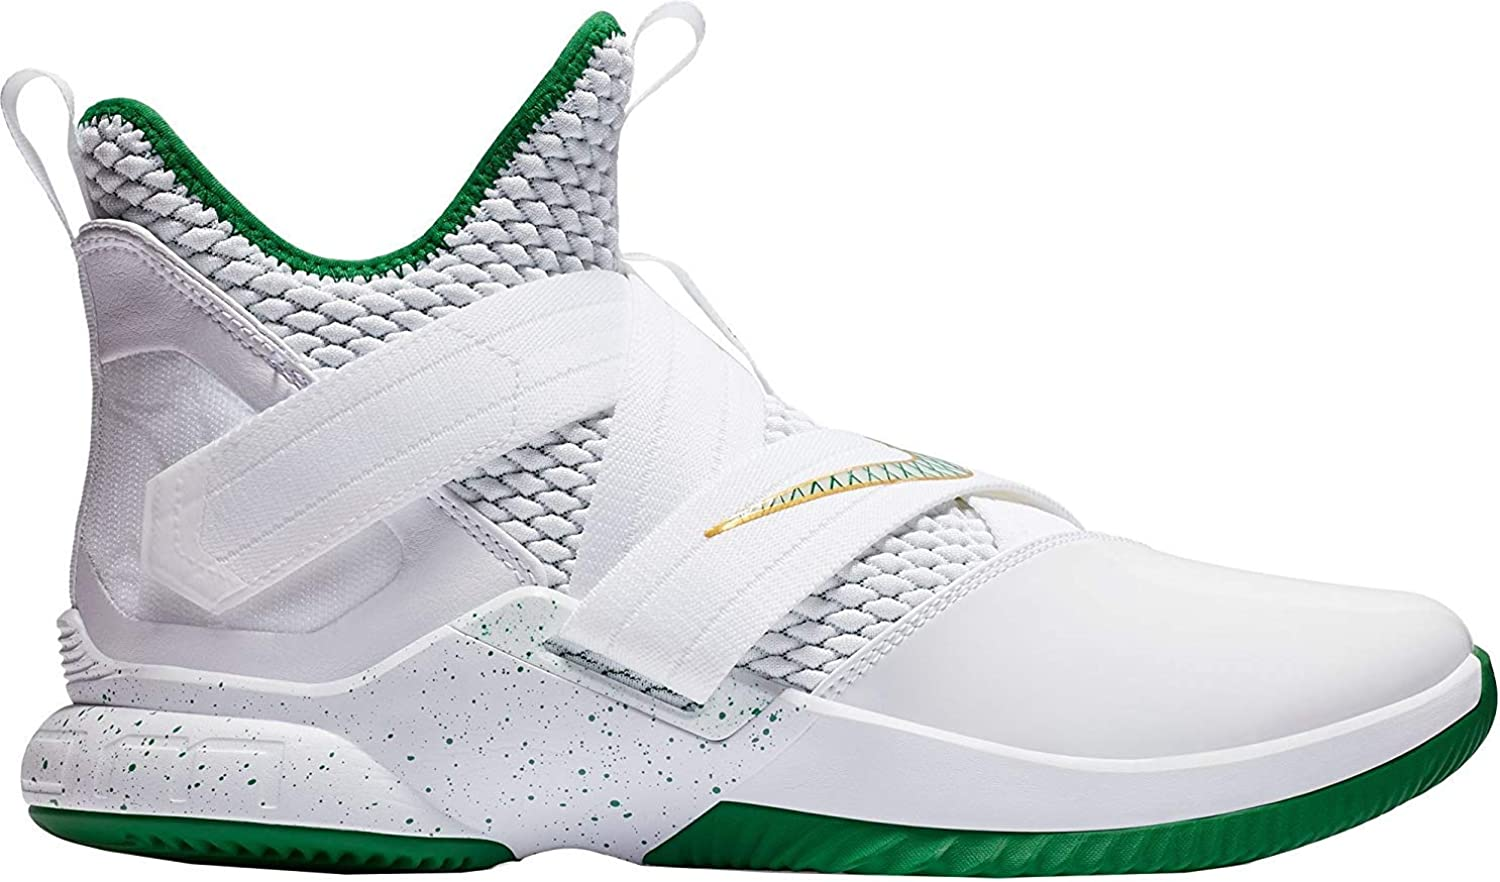 Nike Lebron Soldier XII Mens Basketball